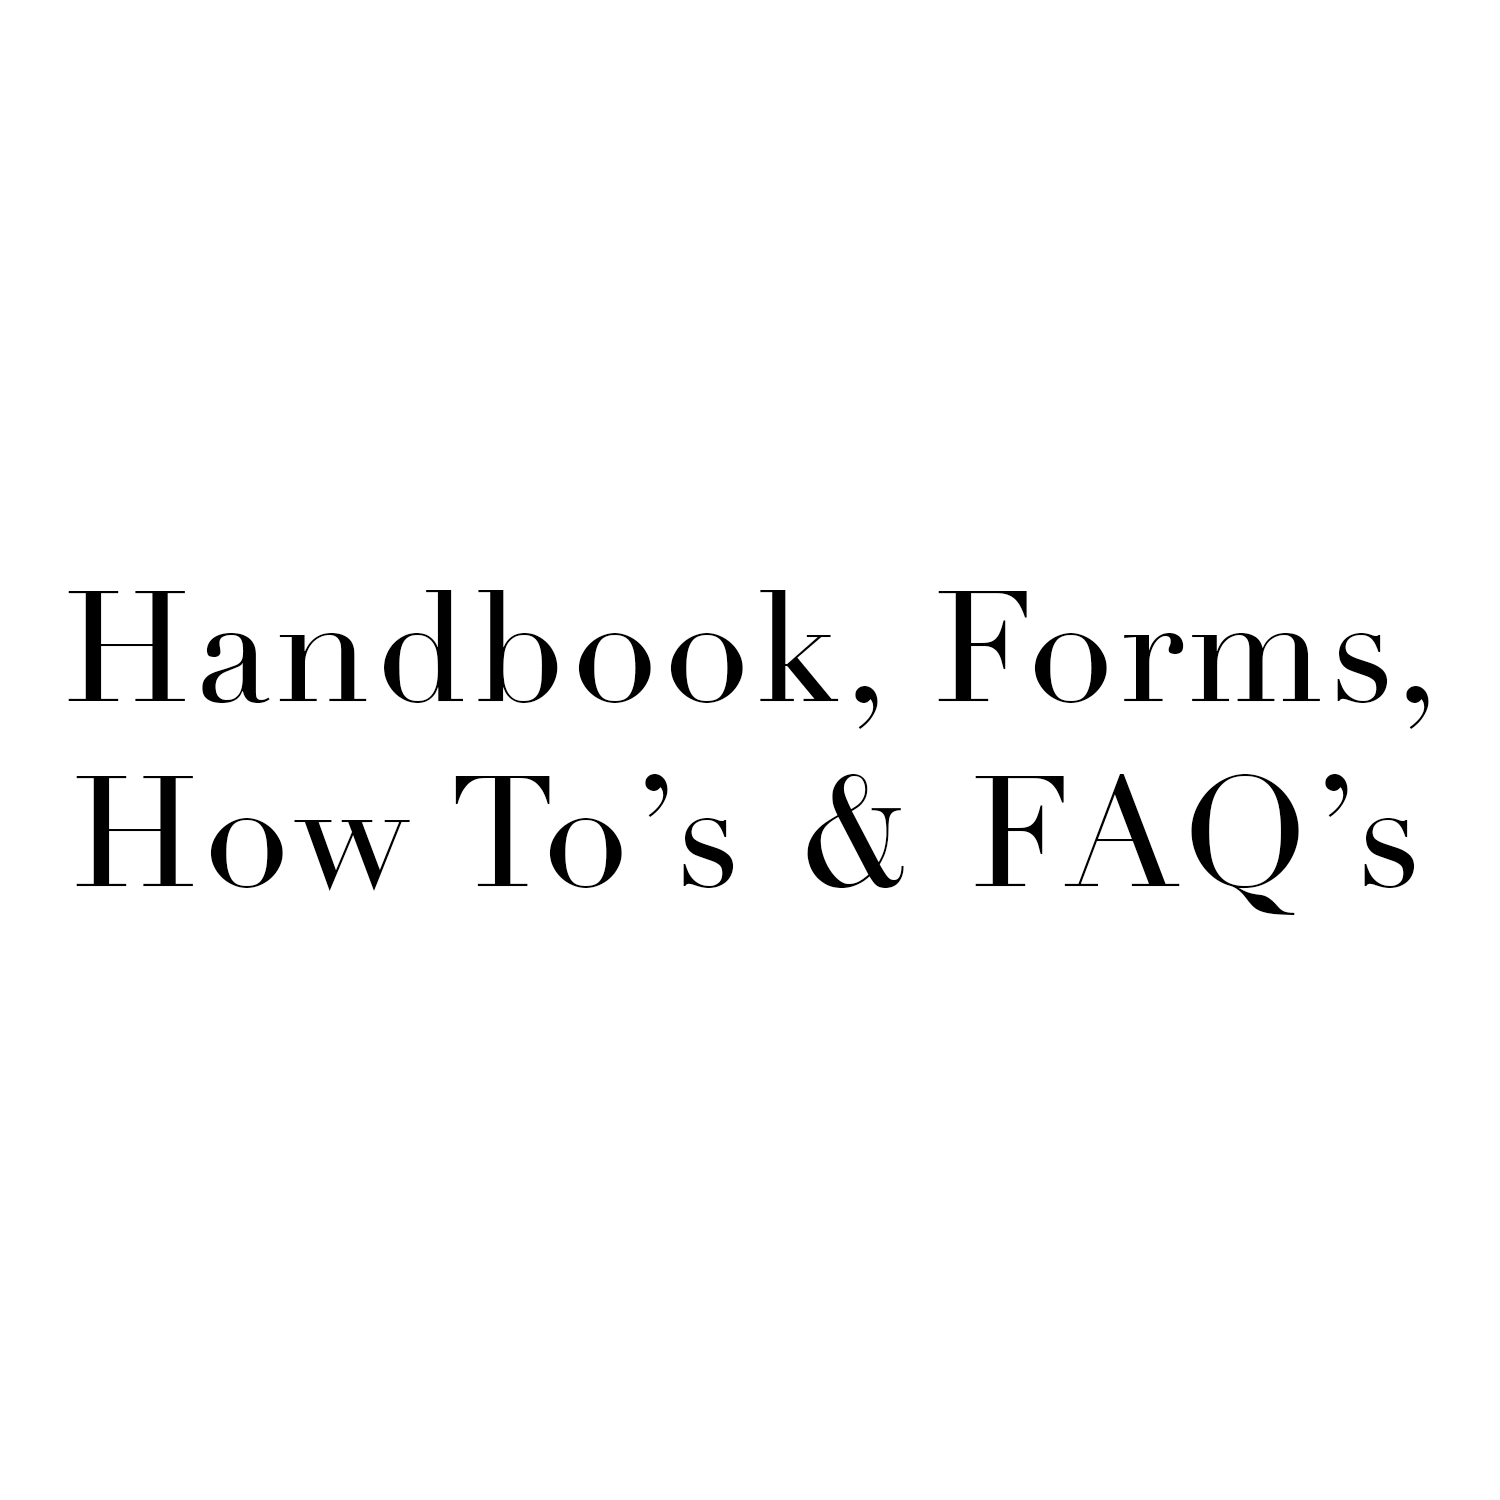 Handbook, Forms, HowTos.png